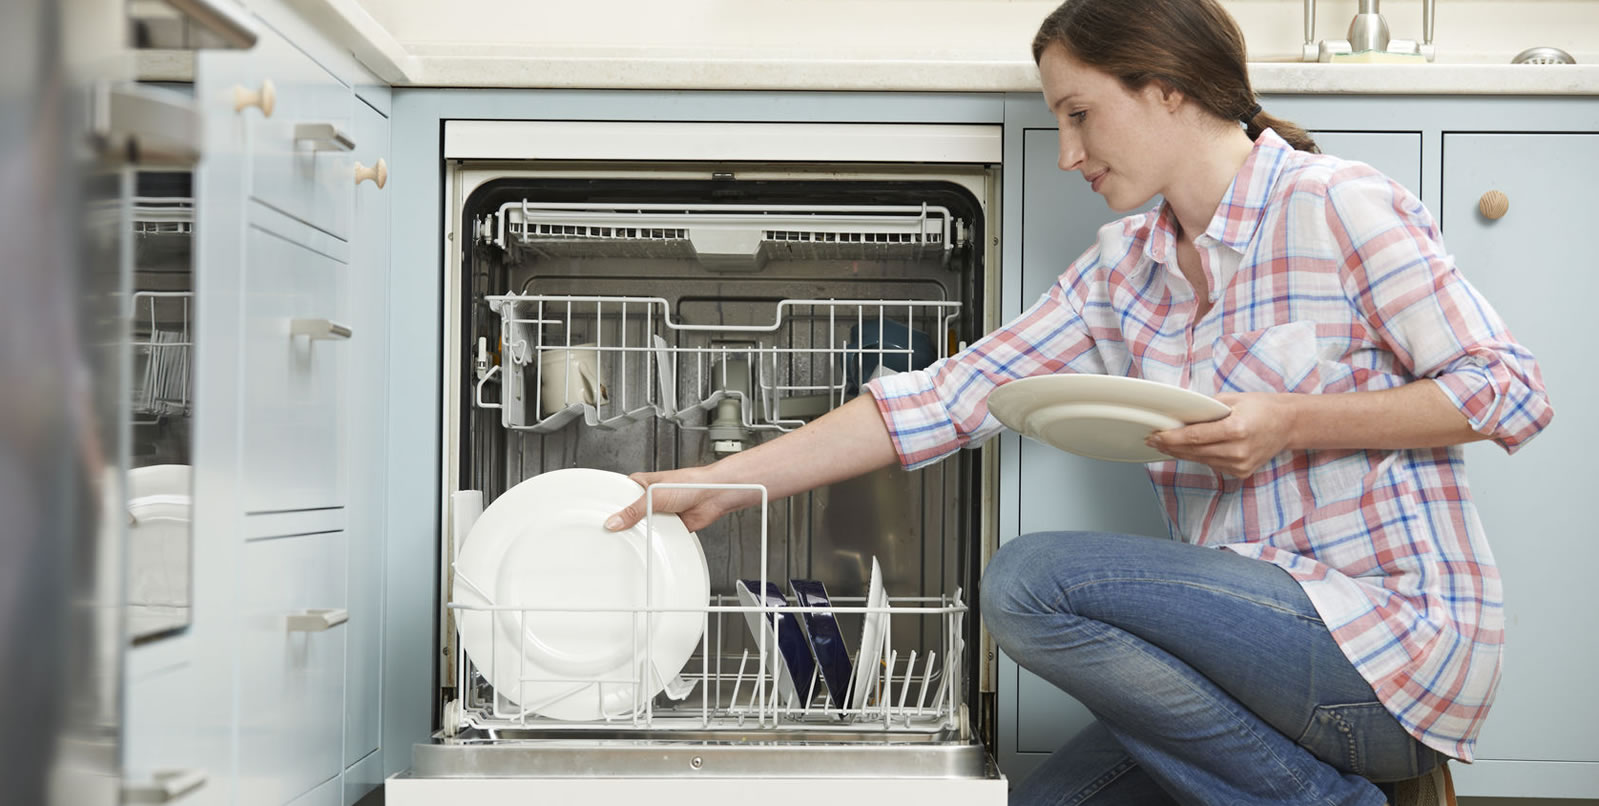 Unloading Dishwasher